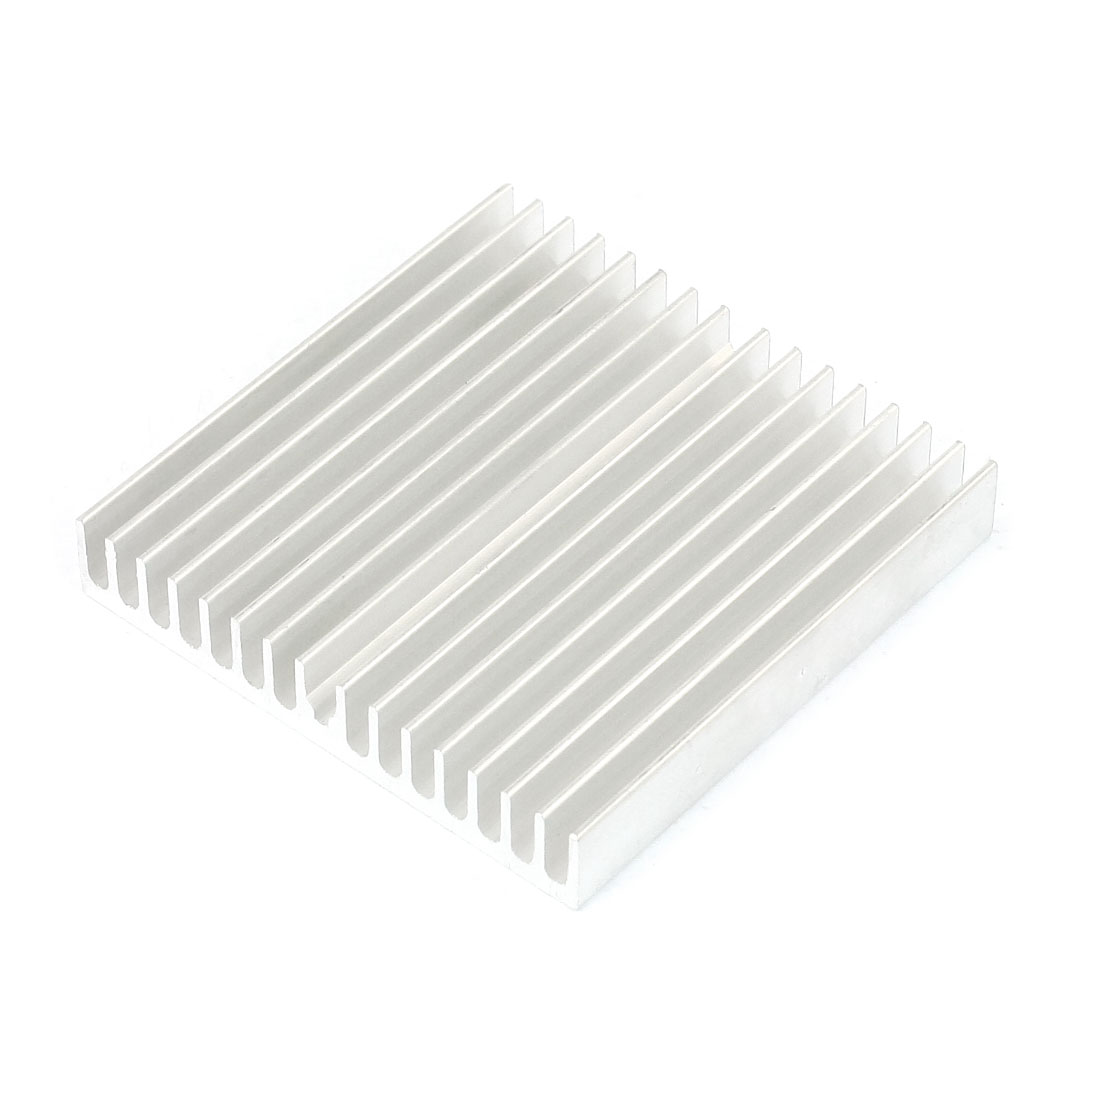 Silver White 60mmx60mmx10mm LED Heat Sink Aluminum Cooling Fin